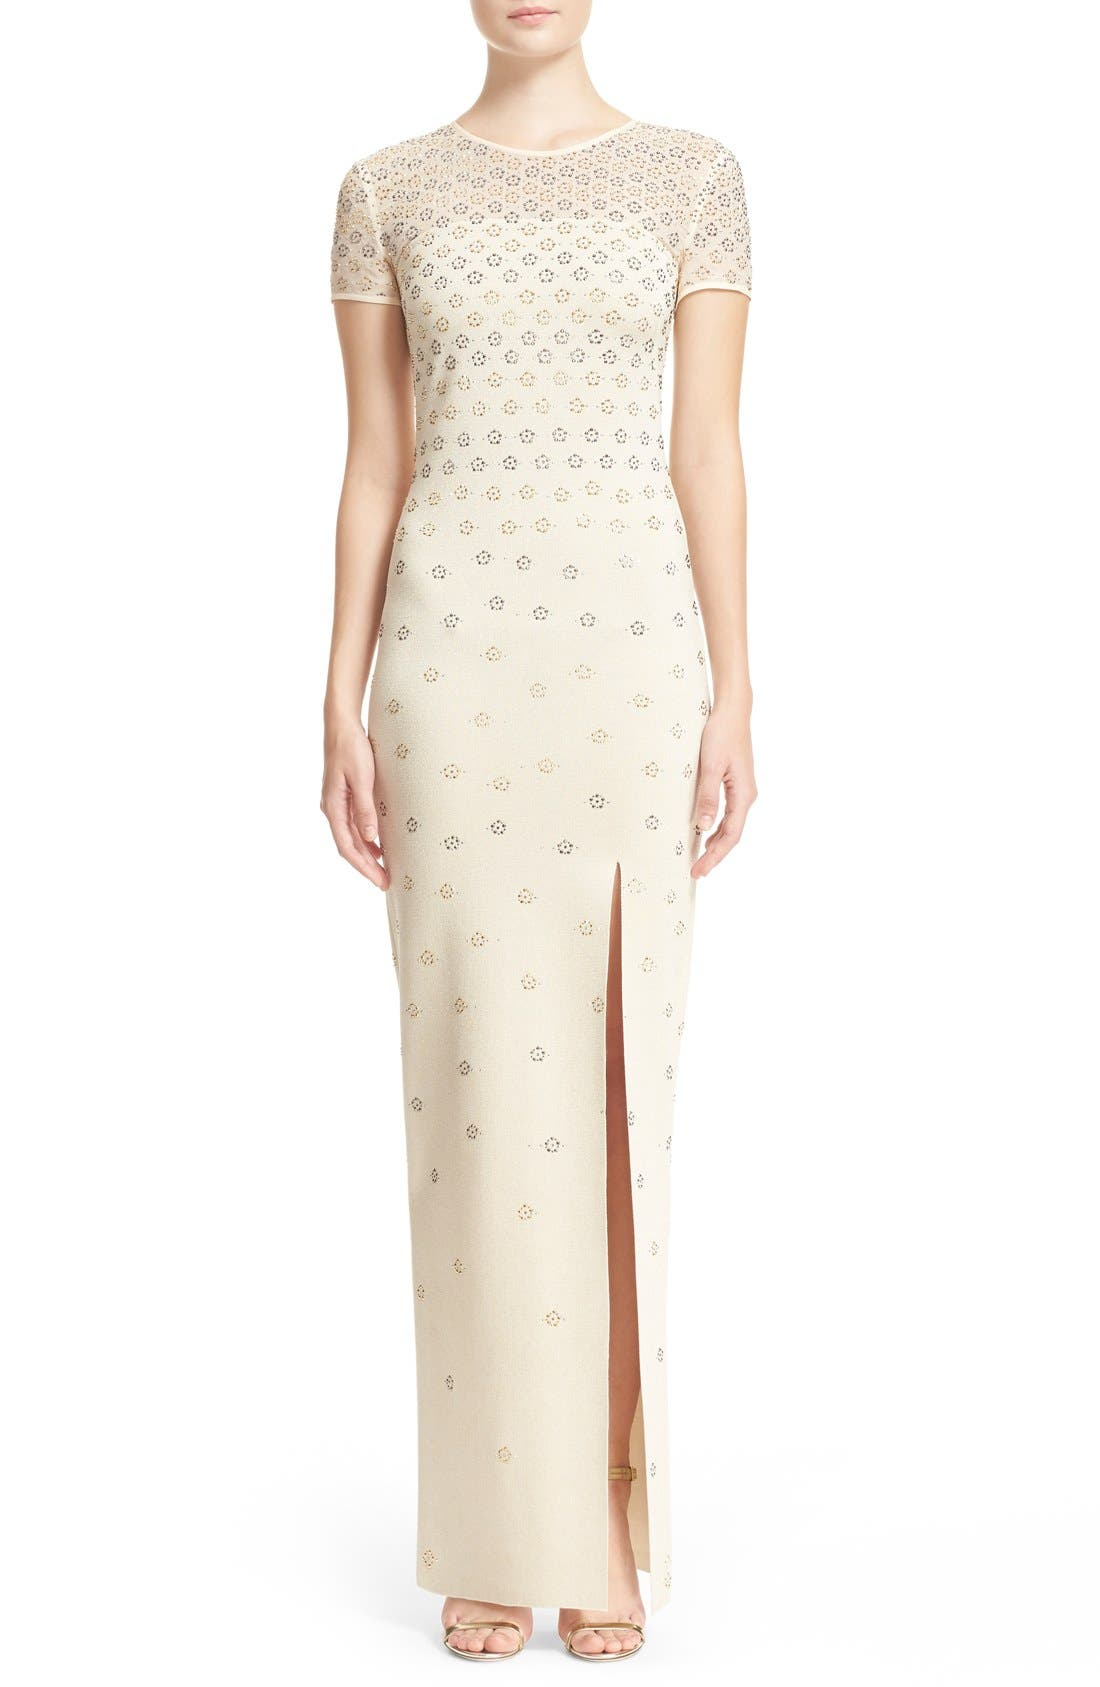 Alternate Image 1 Selected - St. John Collection Crystal Embellished Shimmer Milano Knit Gown